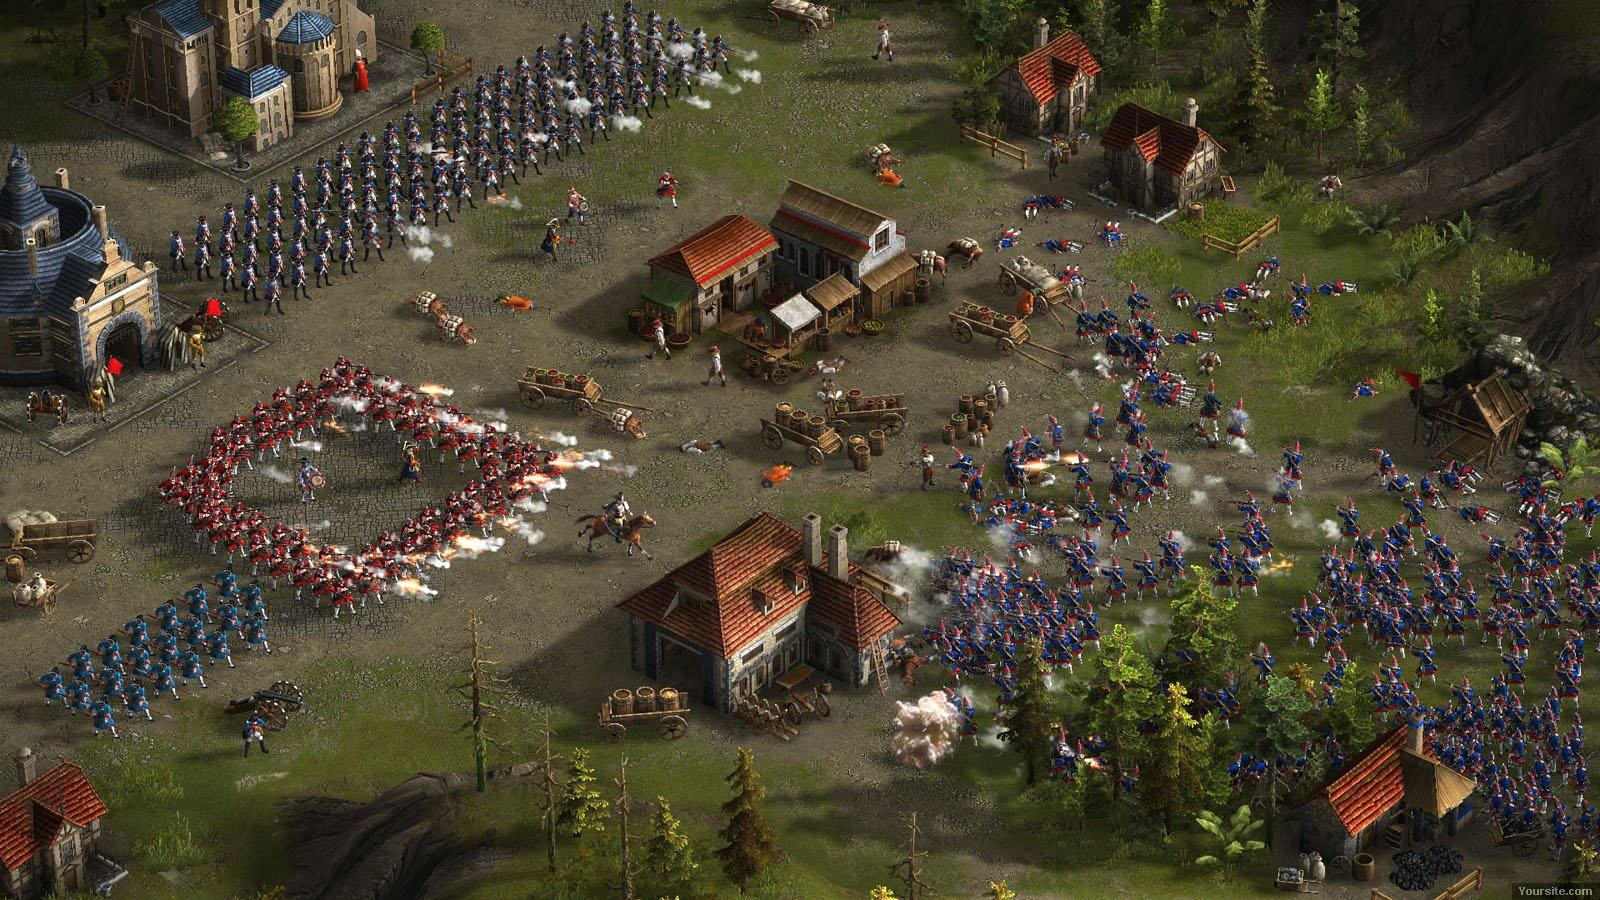 Казаки 3 / Cossacks 3 [v 2.0.5.87.5834 + 7 DLC] (2016) PC | Repack от =nemos=